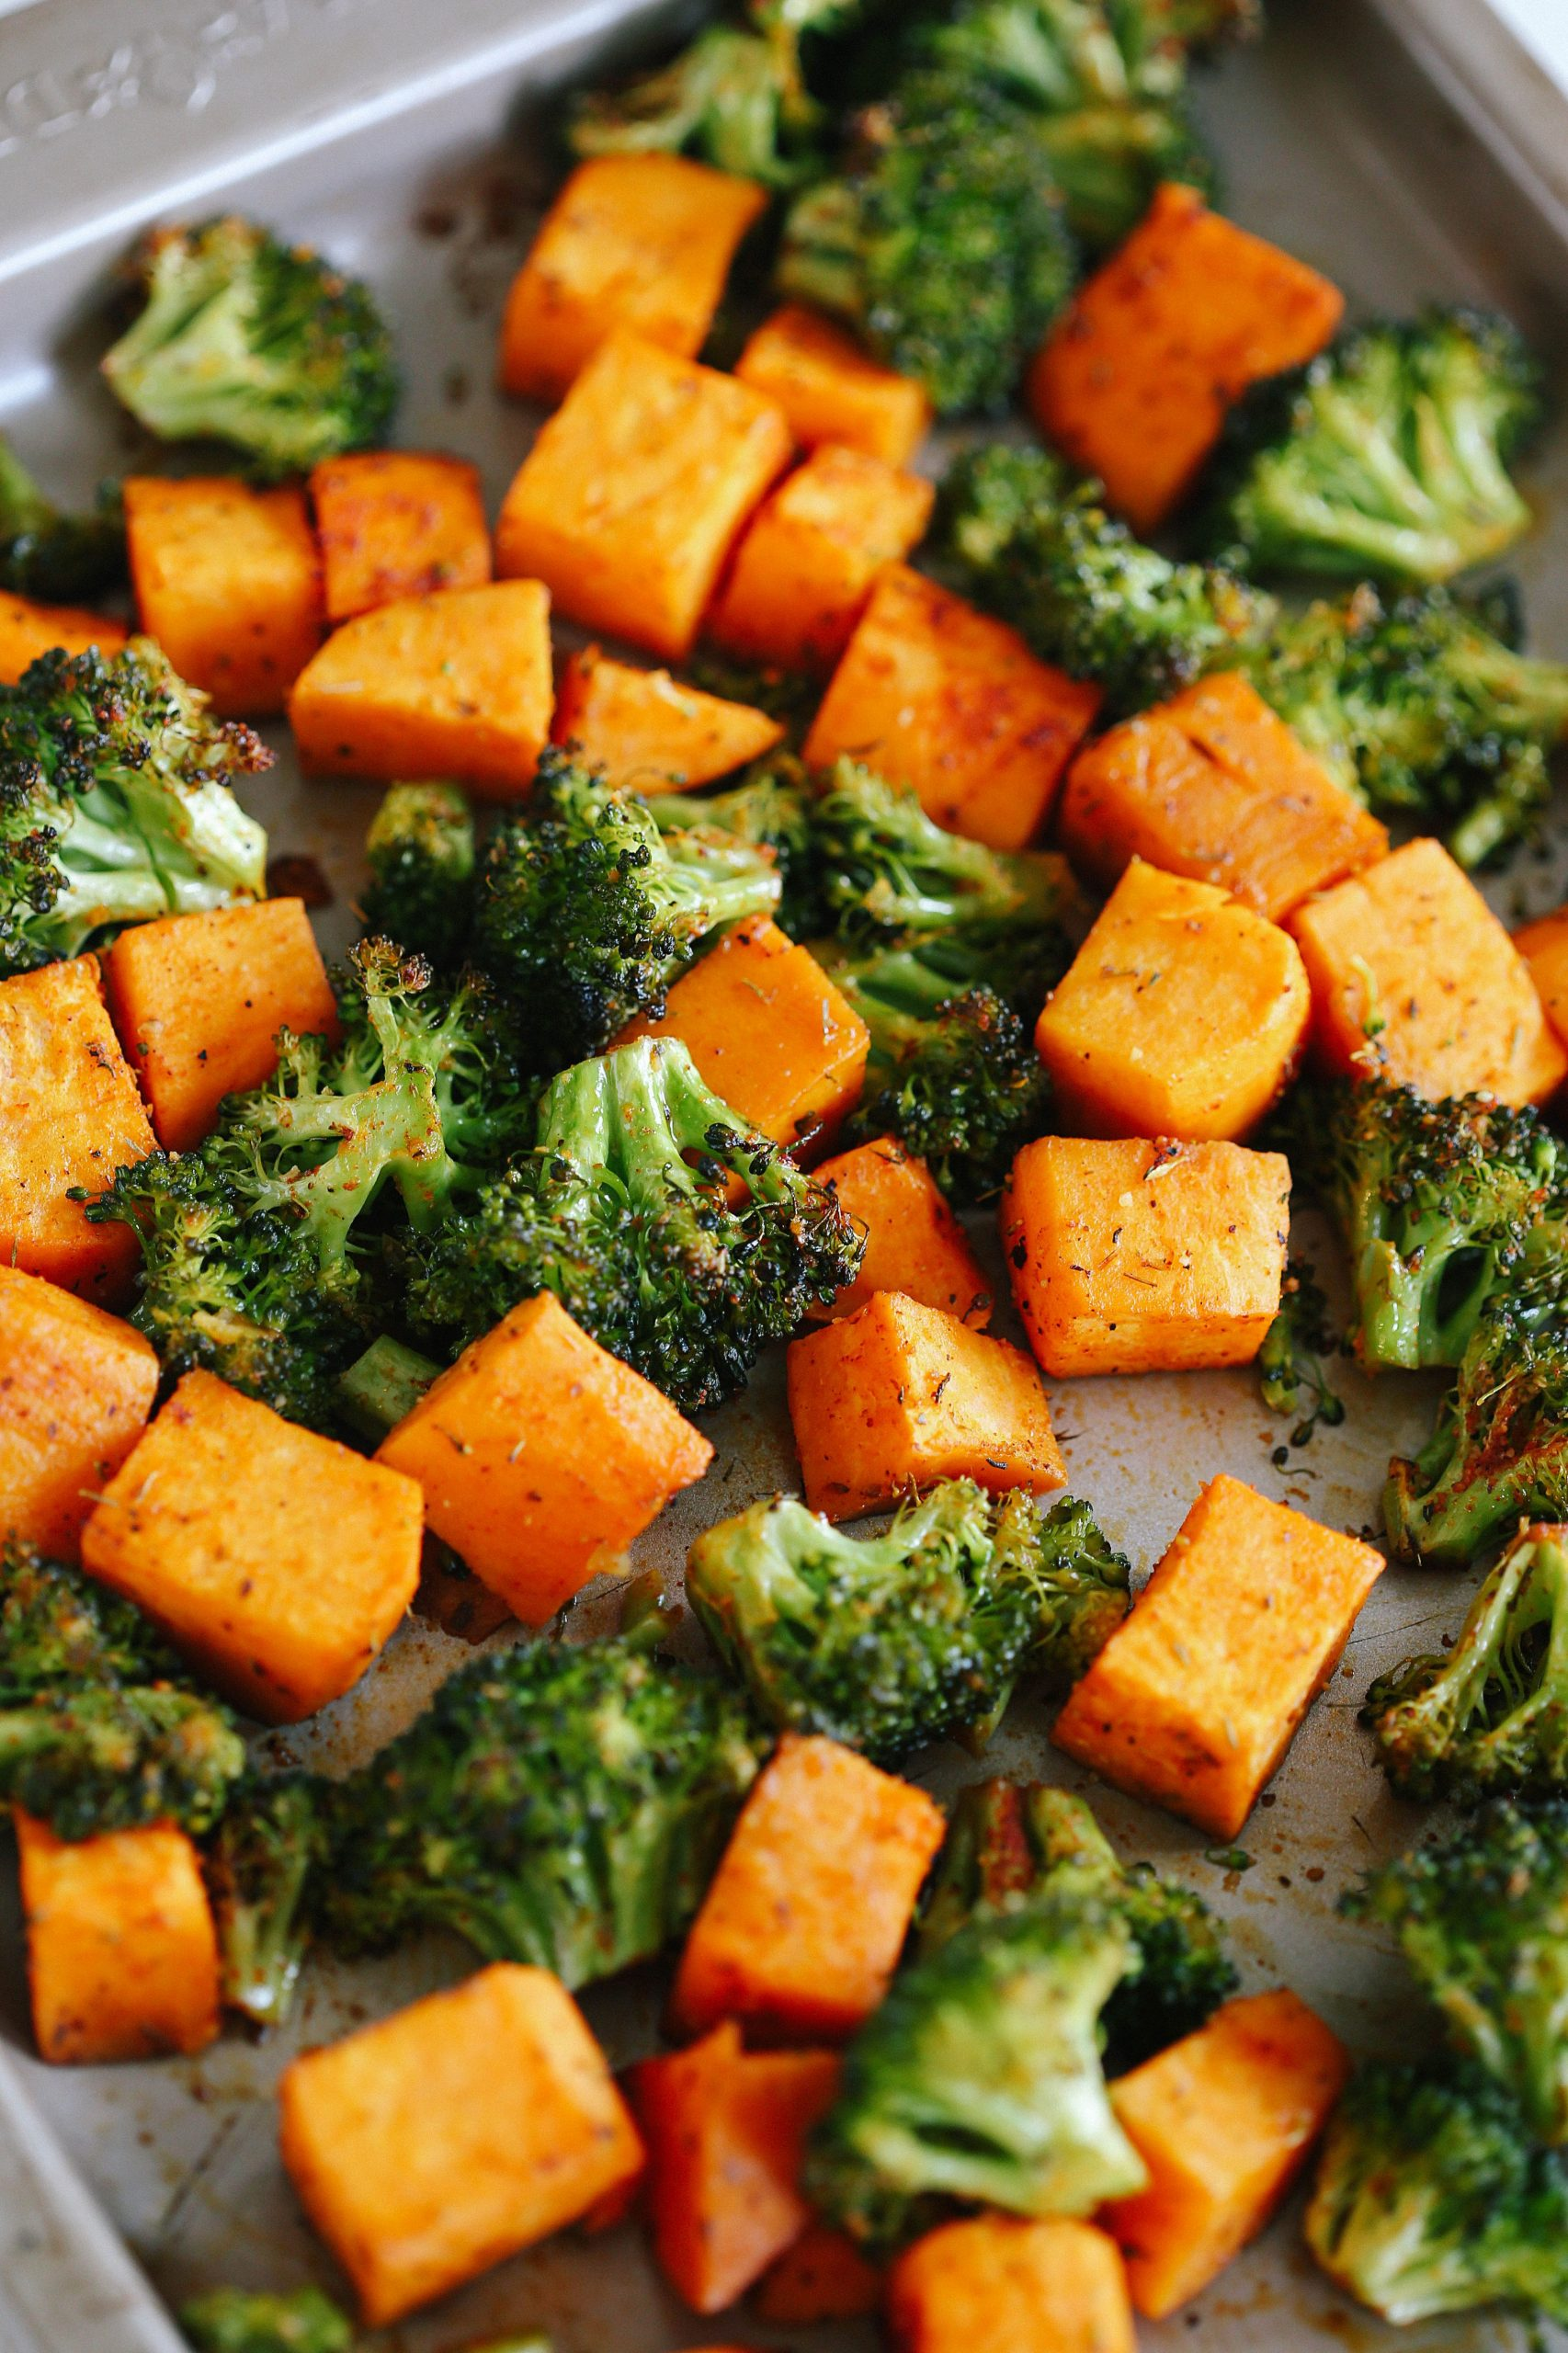 Perfectly Roasted Broccoli & Sweet Potatoes - Vegetable Recipes Yummy